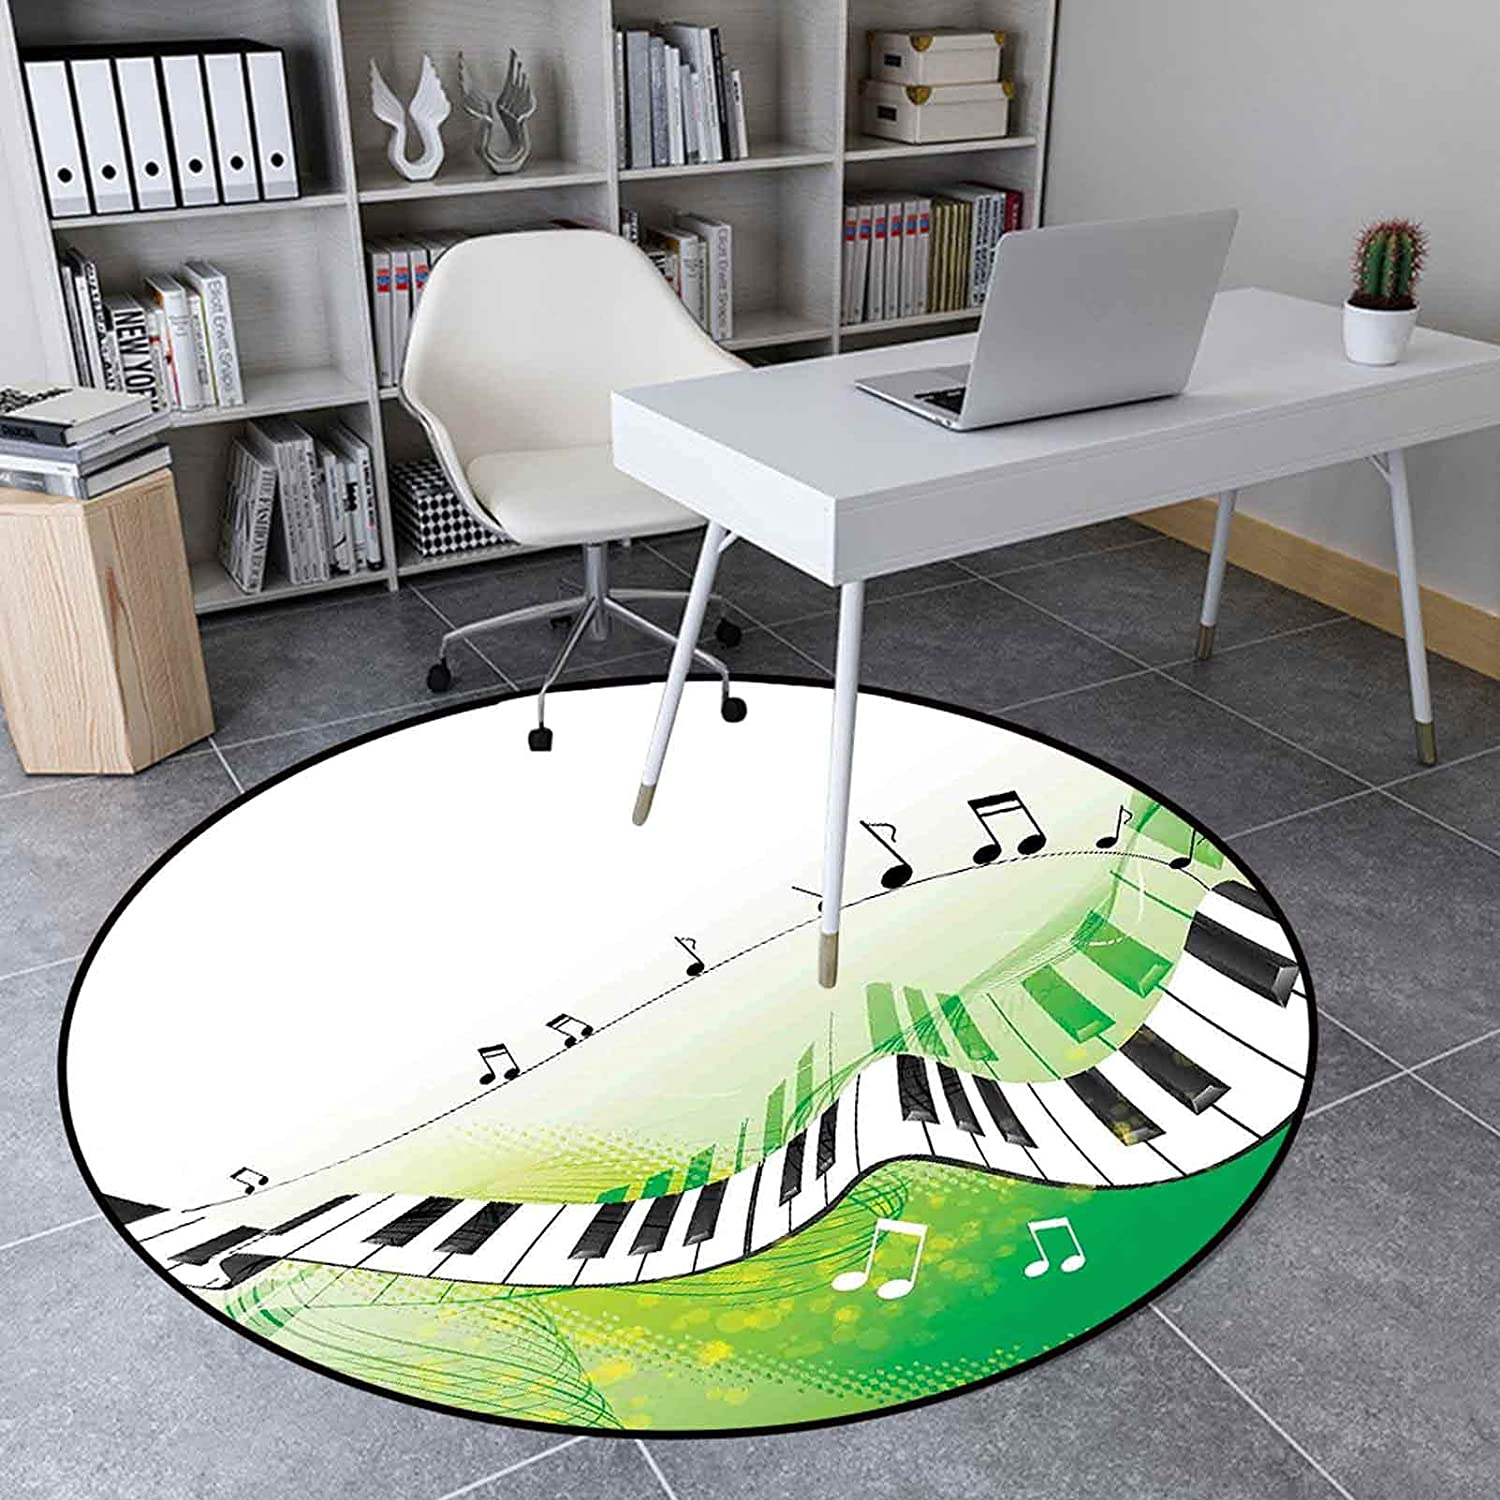 Round Rug Max 82% OFF 4.9' Non-Slip Kitchen Pian Floor Mat Factory outlet Soft Music